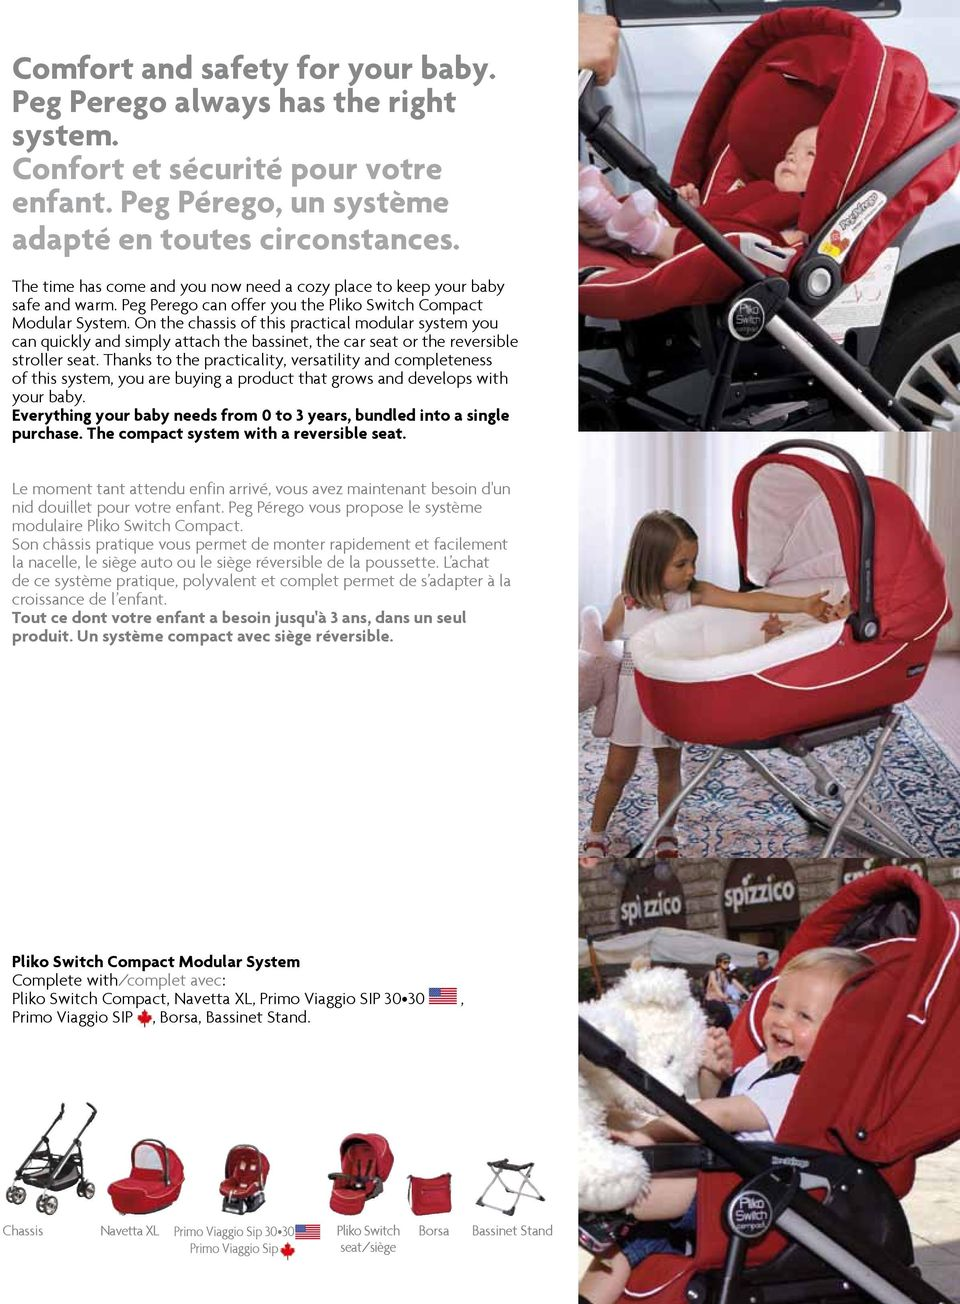 On the chassis of this practical modular system you can quickly and simply attach the bassinet, the car seat or the reversible stroller seat.